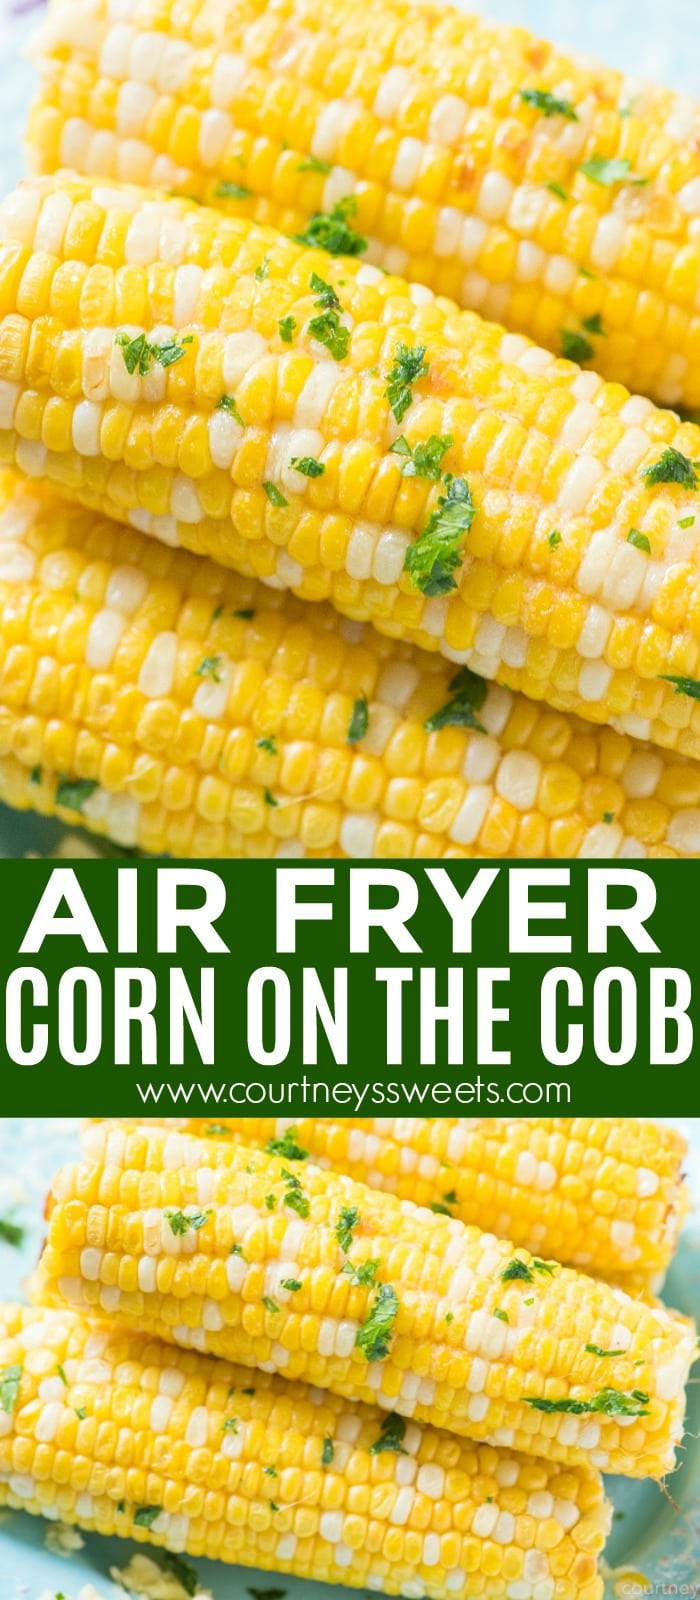 Air Fryer Corn on the Cob is bursting with flavor, sweet, and juicy as can be! Make this with fresh corn for a great side dish recipe.